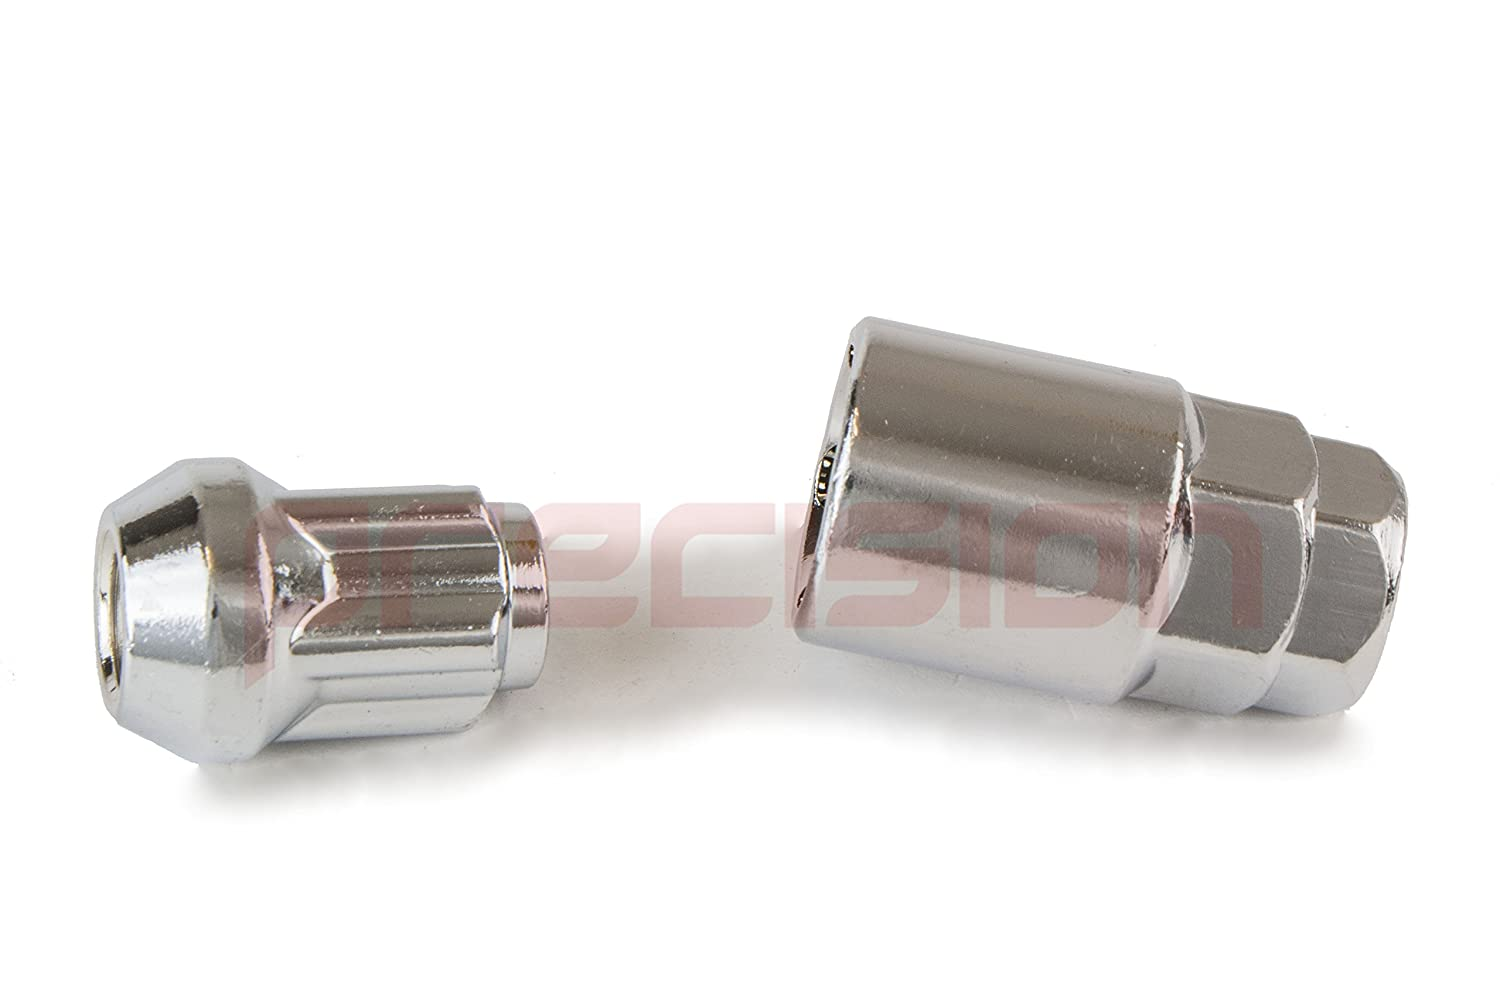 Chrome Locking Nuts for Genuine /& Aftermarket Alloy Wheels M12x1.5mm✓ 60/° Taper✓ Part No.N10OE